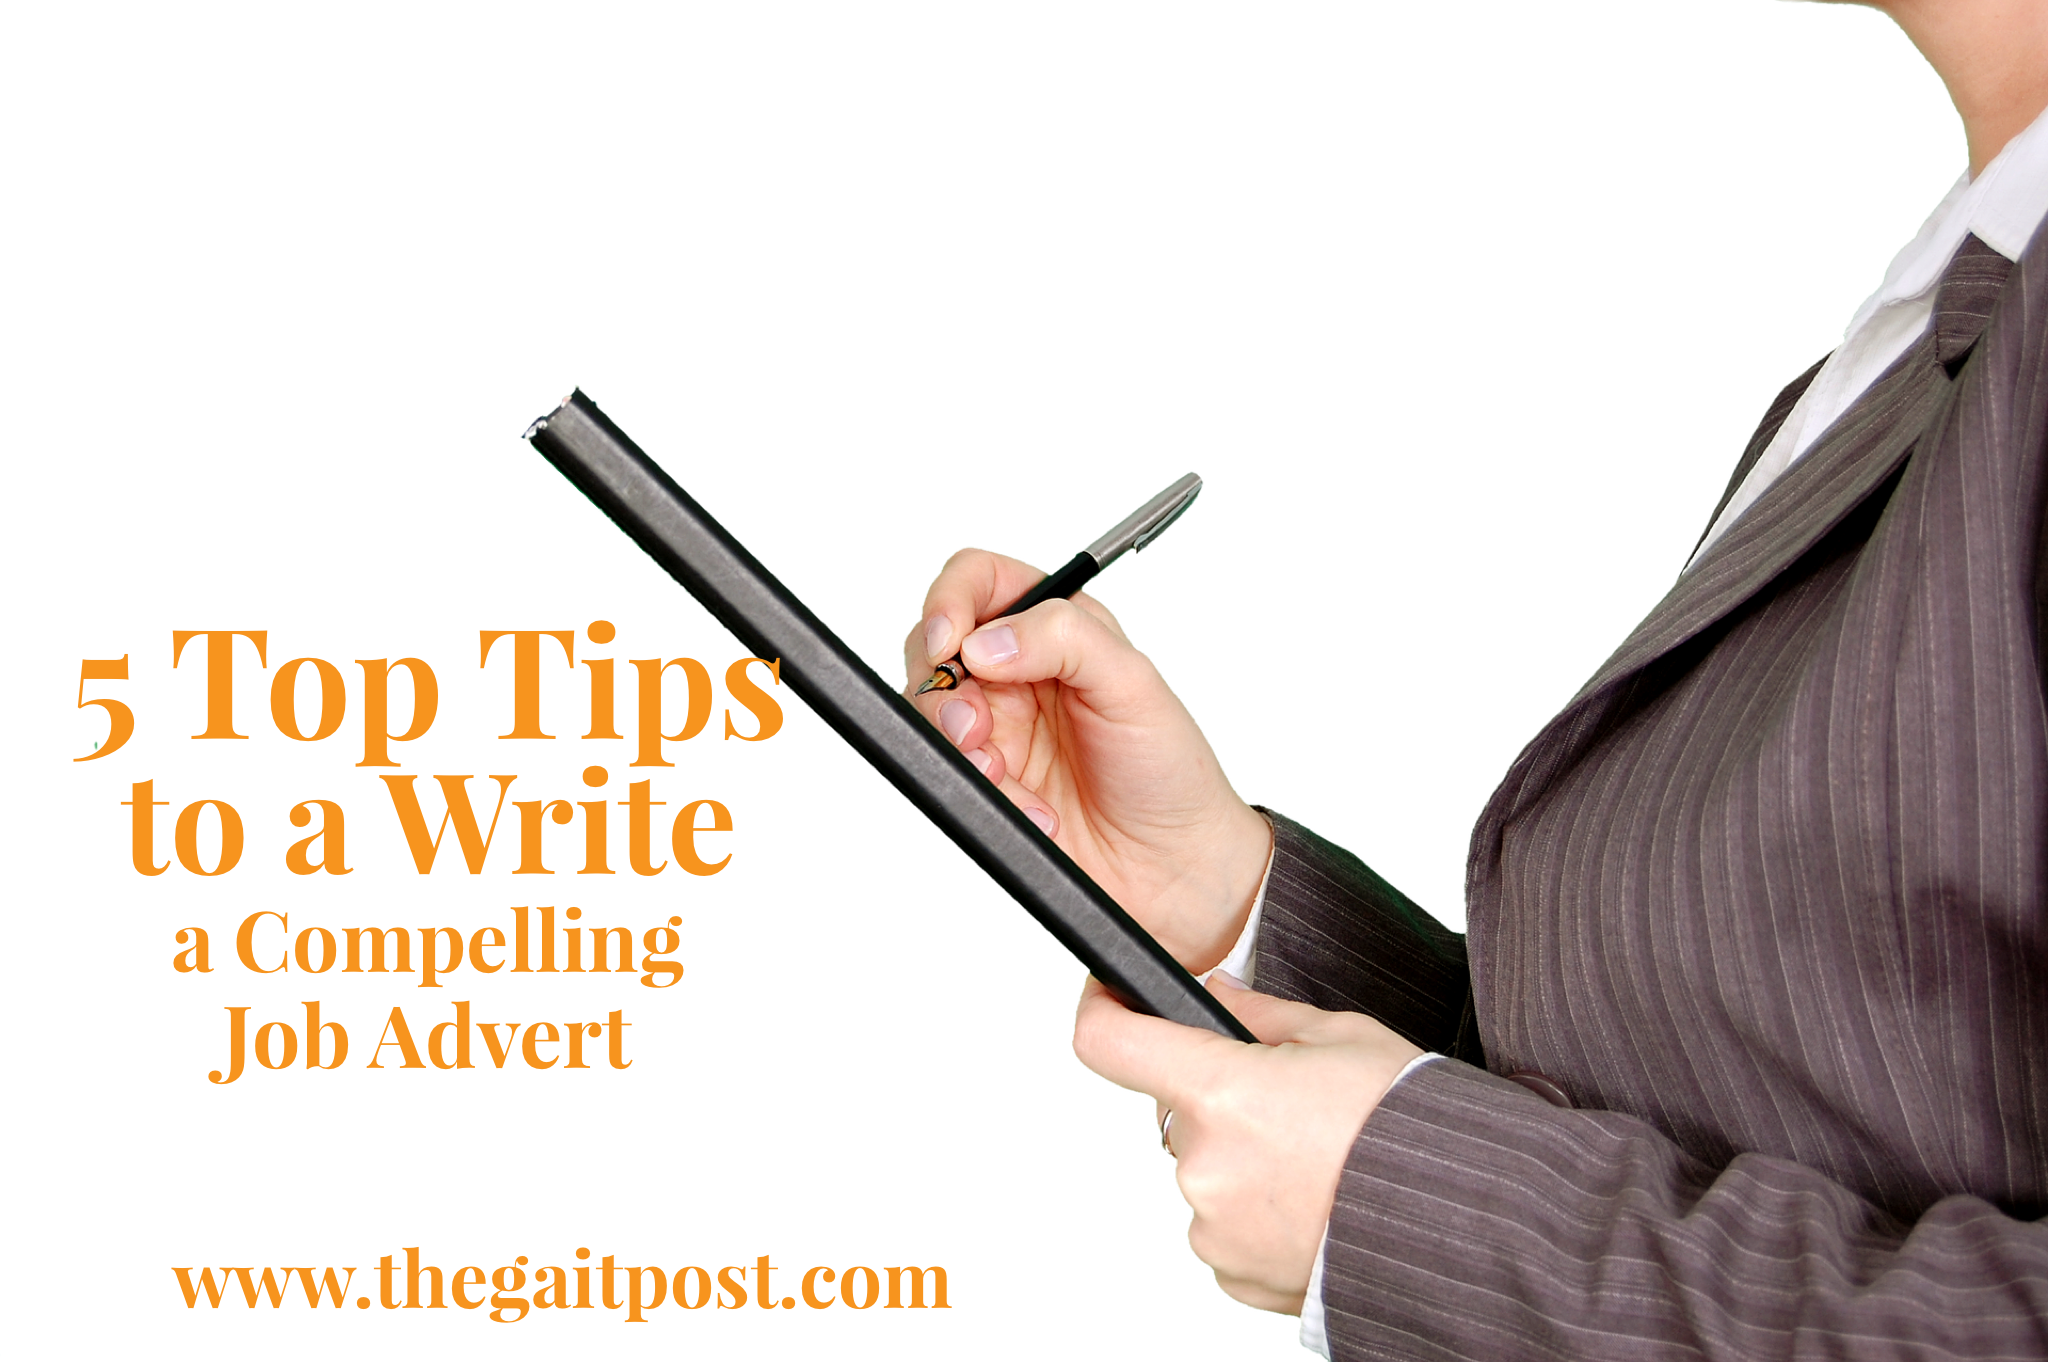 How should a write an Essay about an Ad from a magazine?